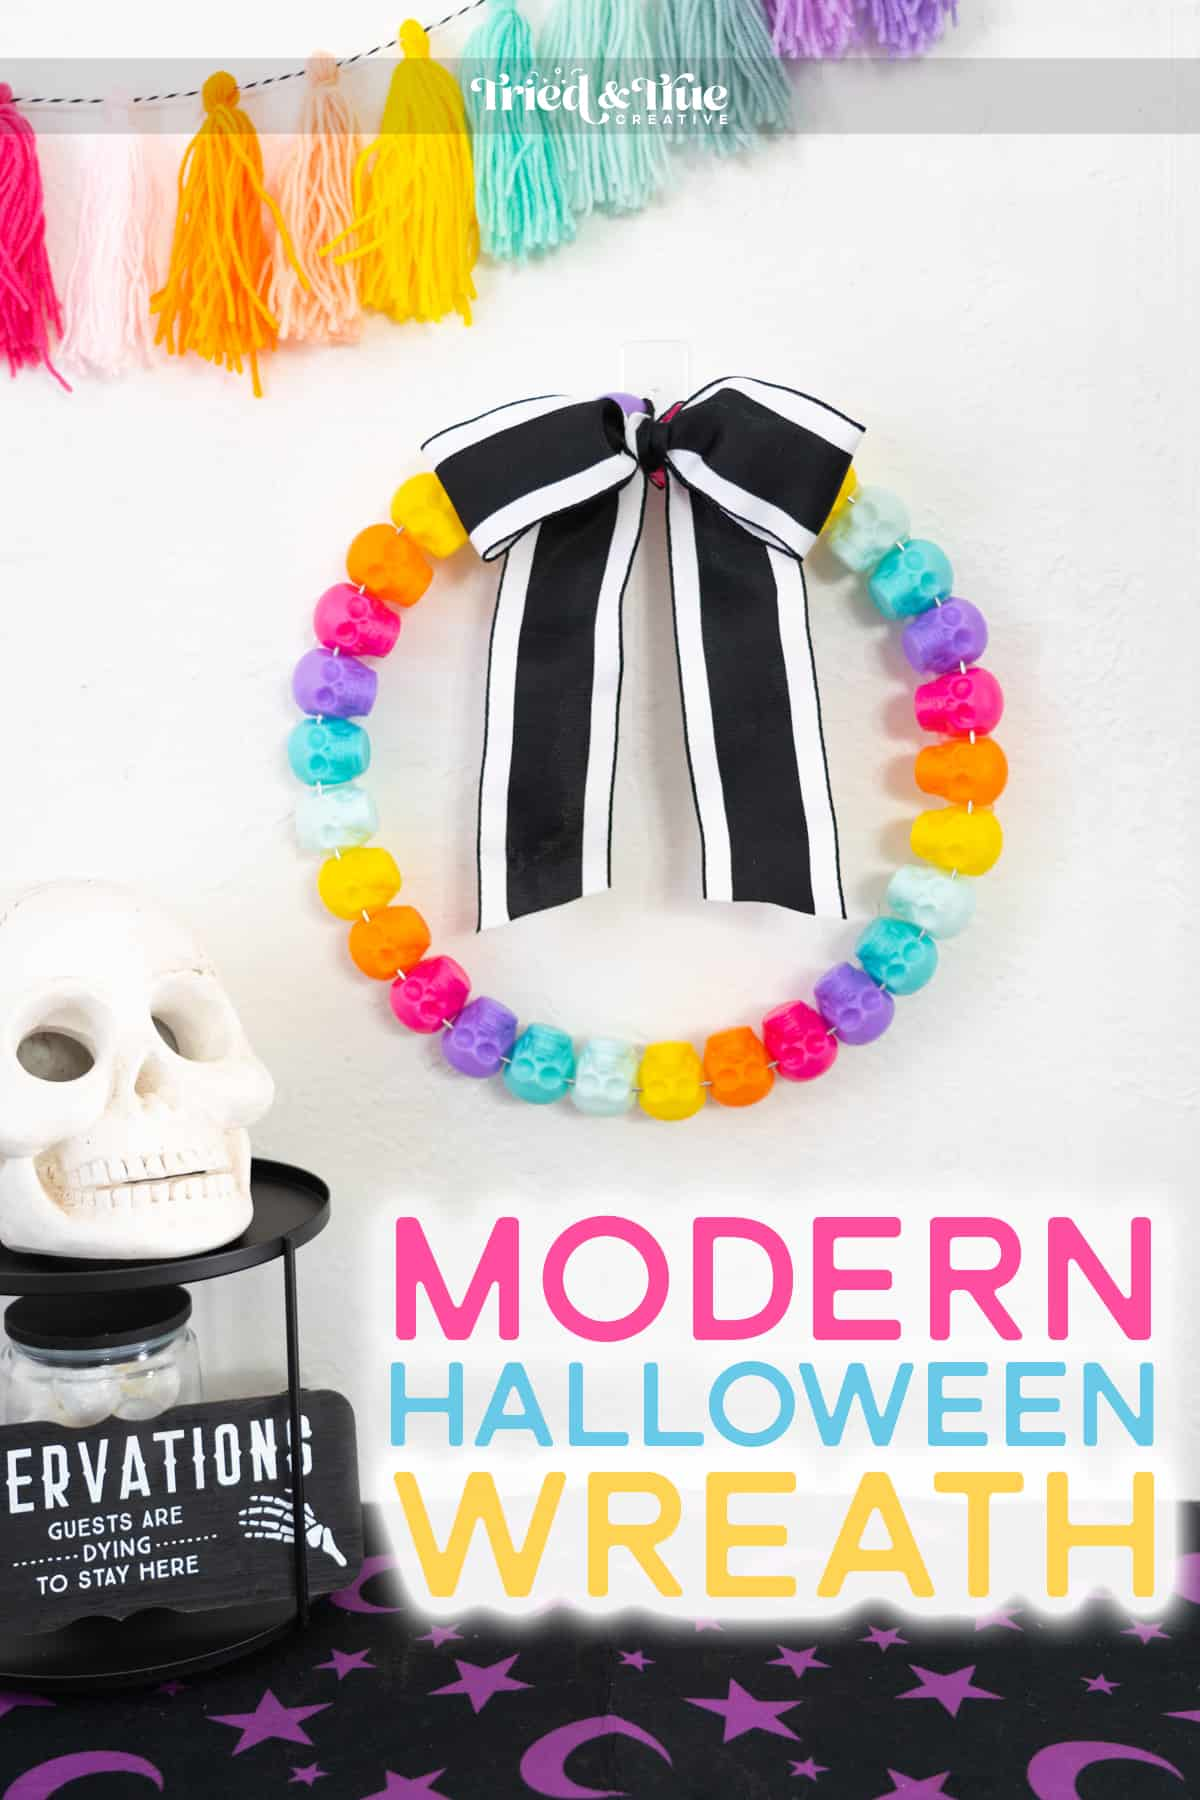 Colorful Halloween Wreath craft made of colorful skulls on a white wall with Halloween decor surrounding it.